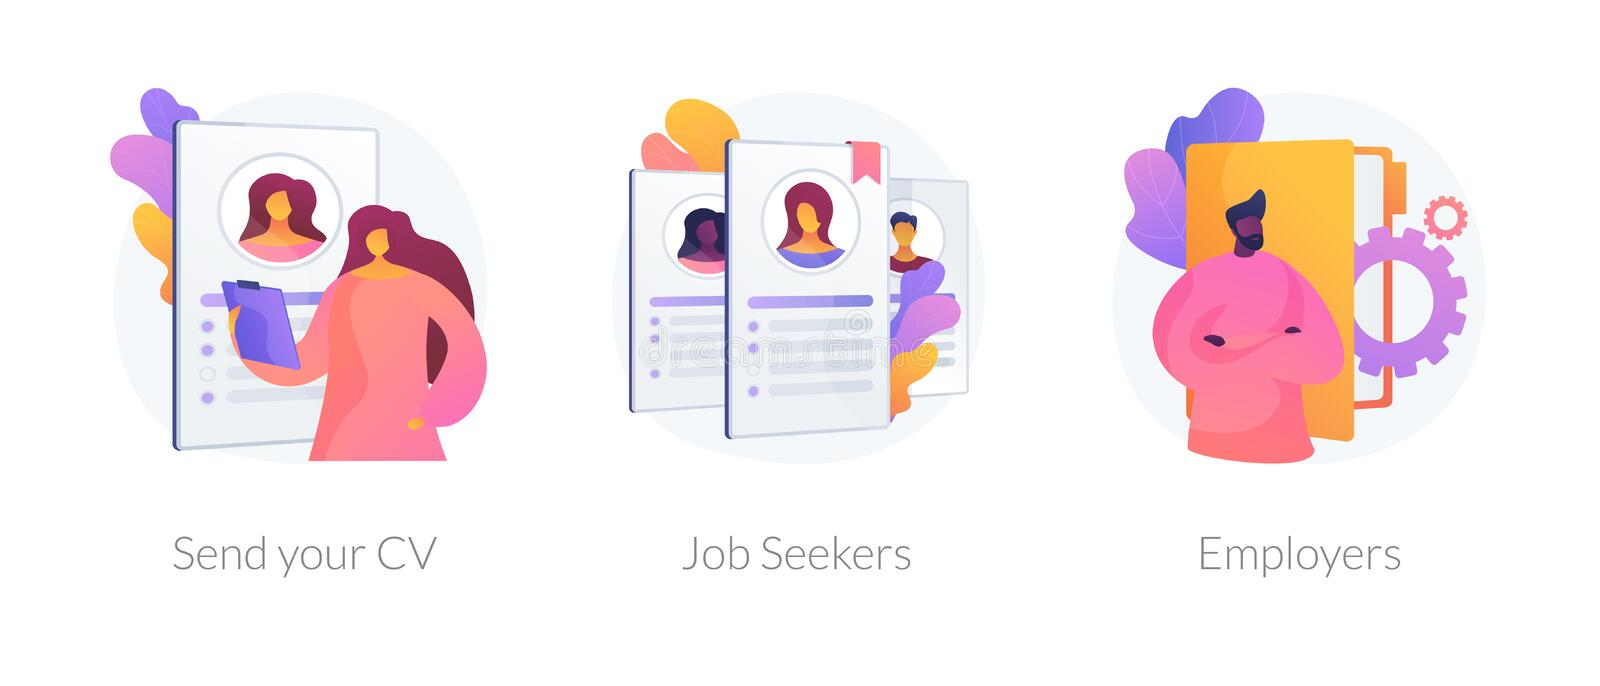 Looking for a job vector concept metaphors. Job searching. Employment service, recruitment agency. Resume writing, finding work. Vacant position. Send your CV vector illustration